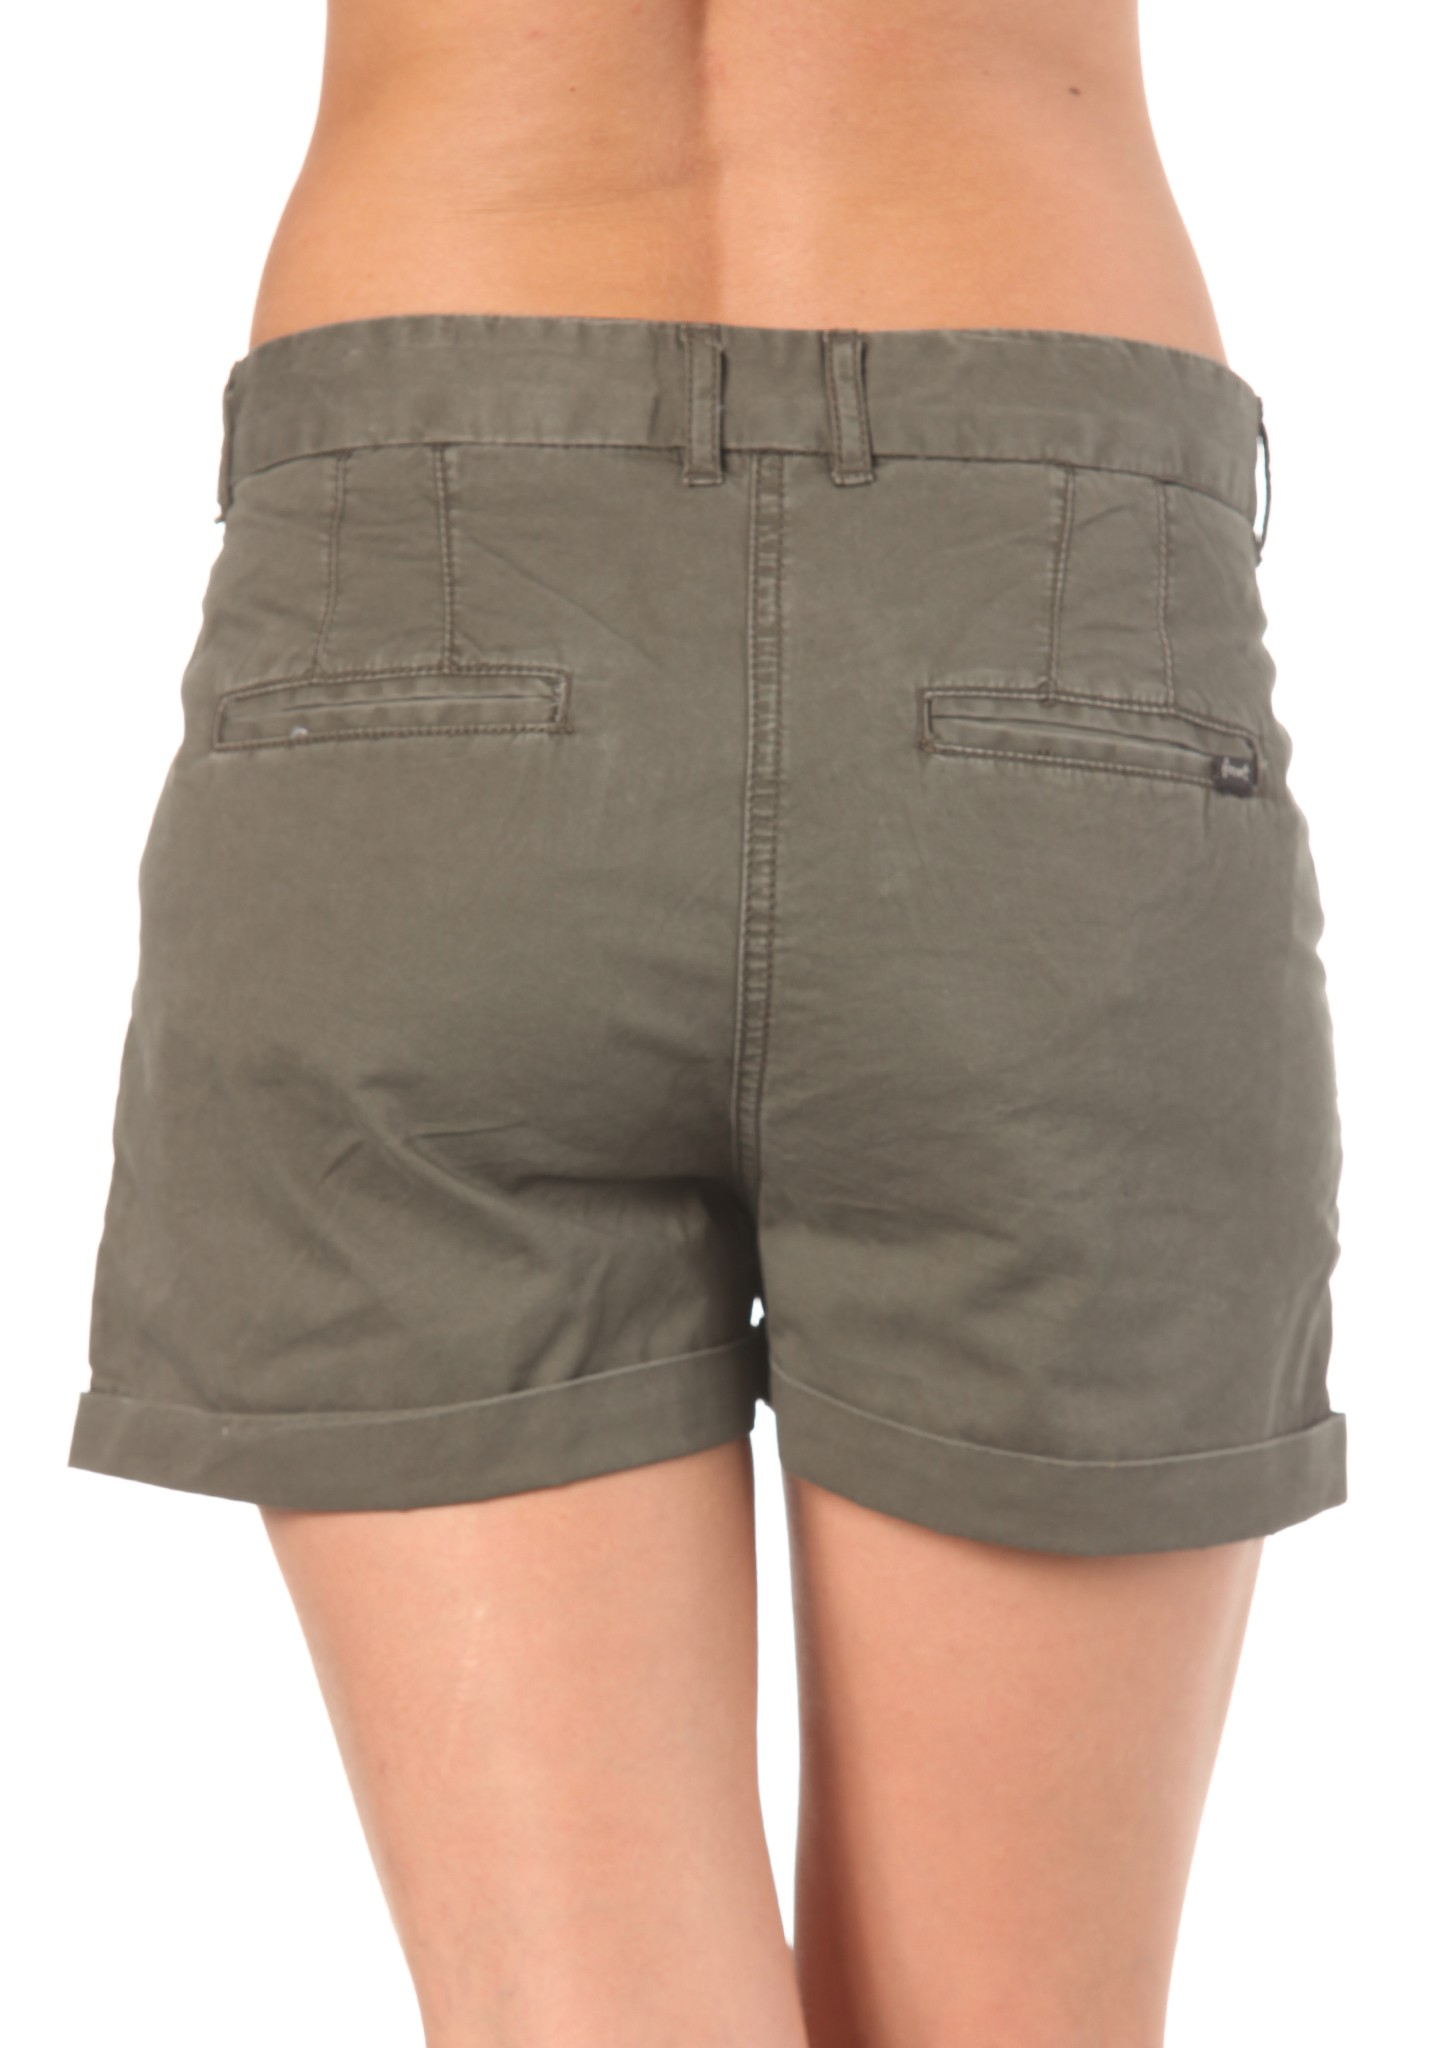 neu forvert dana damen chino shorts ebay. Black Bedroom Furniture Sets. Home Design Ideas